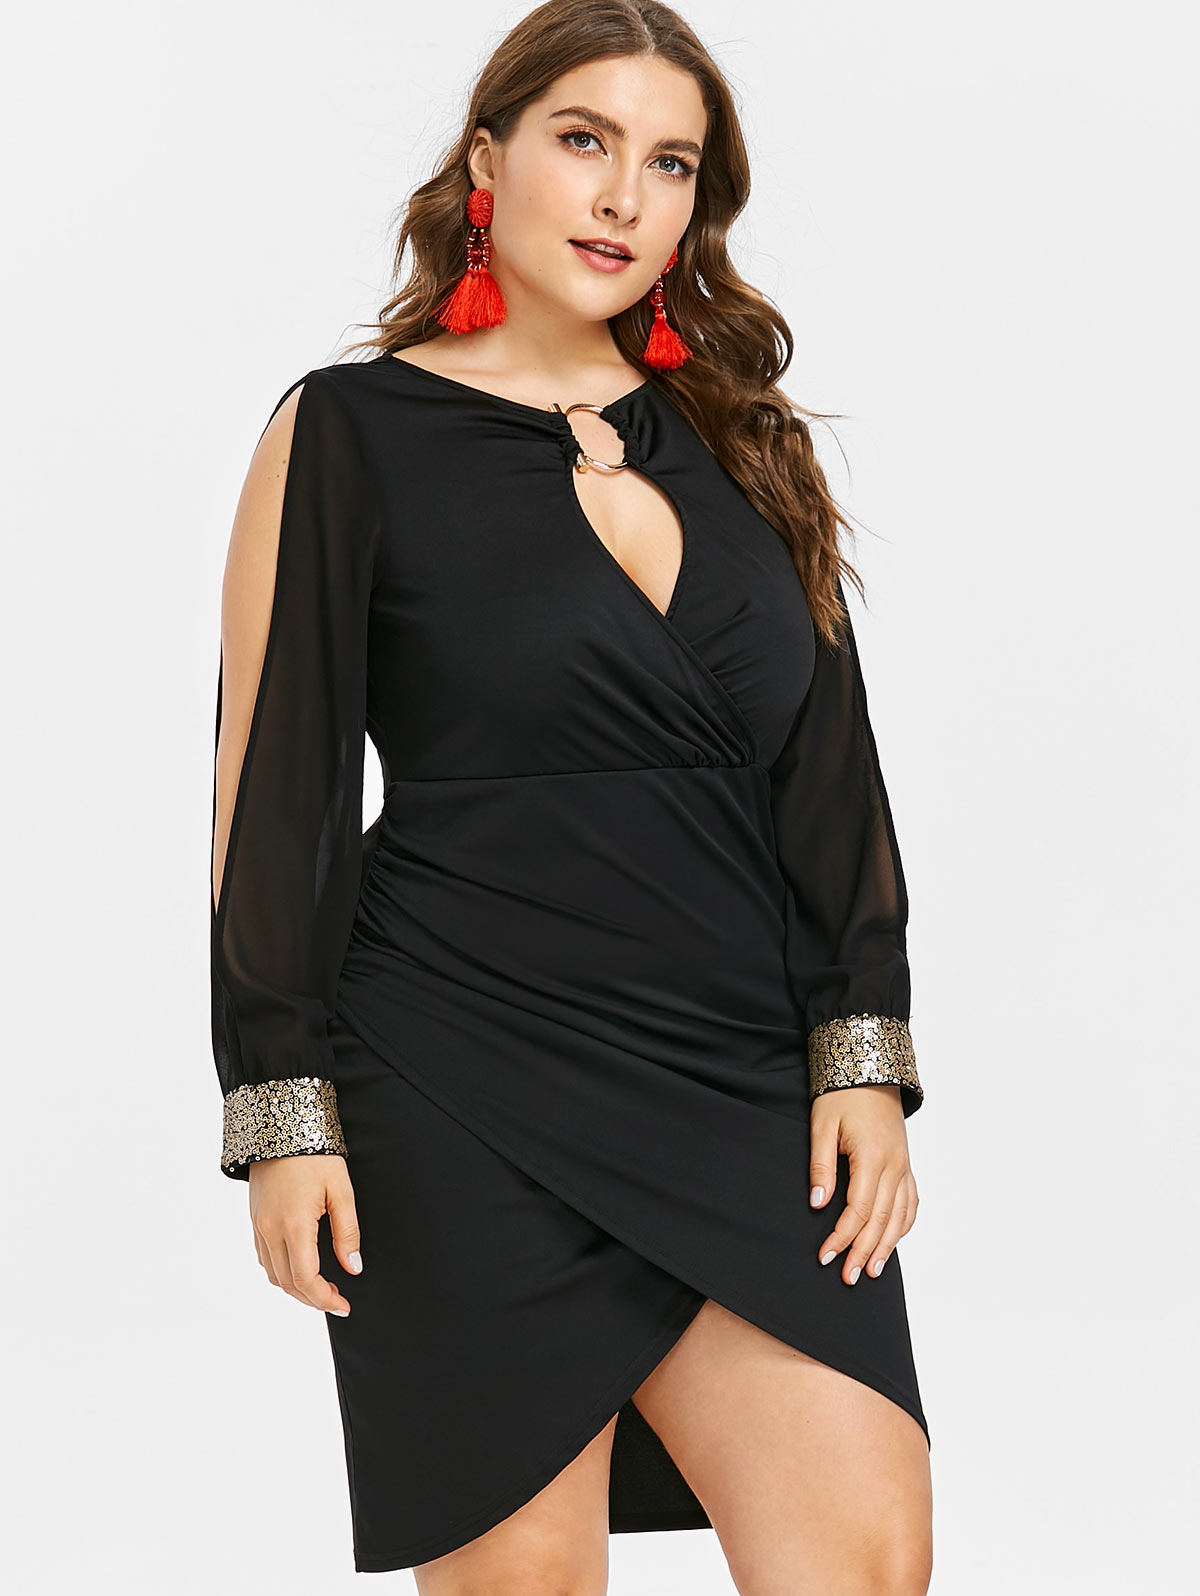 Detail Feedback Questions about Wipalo Slit Sleeve Plus Size O Ring ... b667c5727129